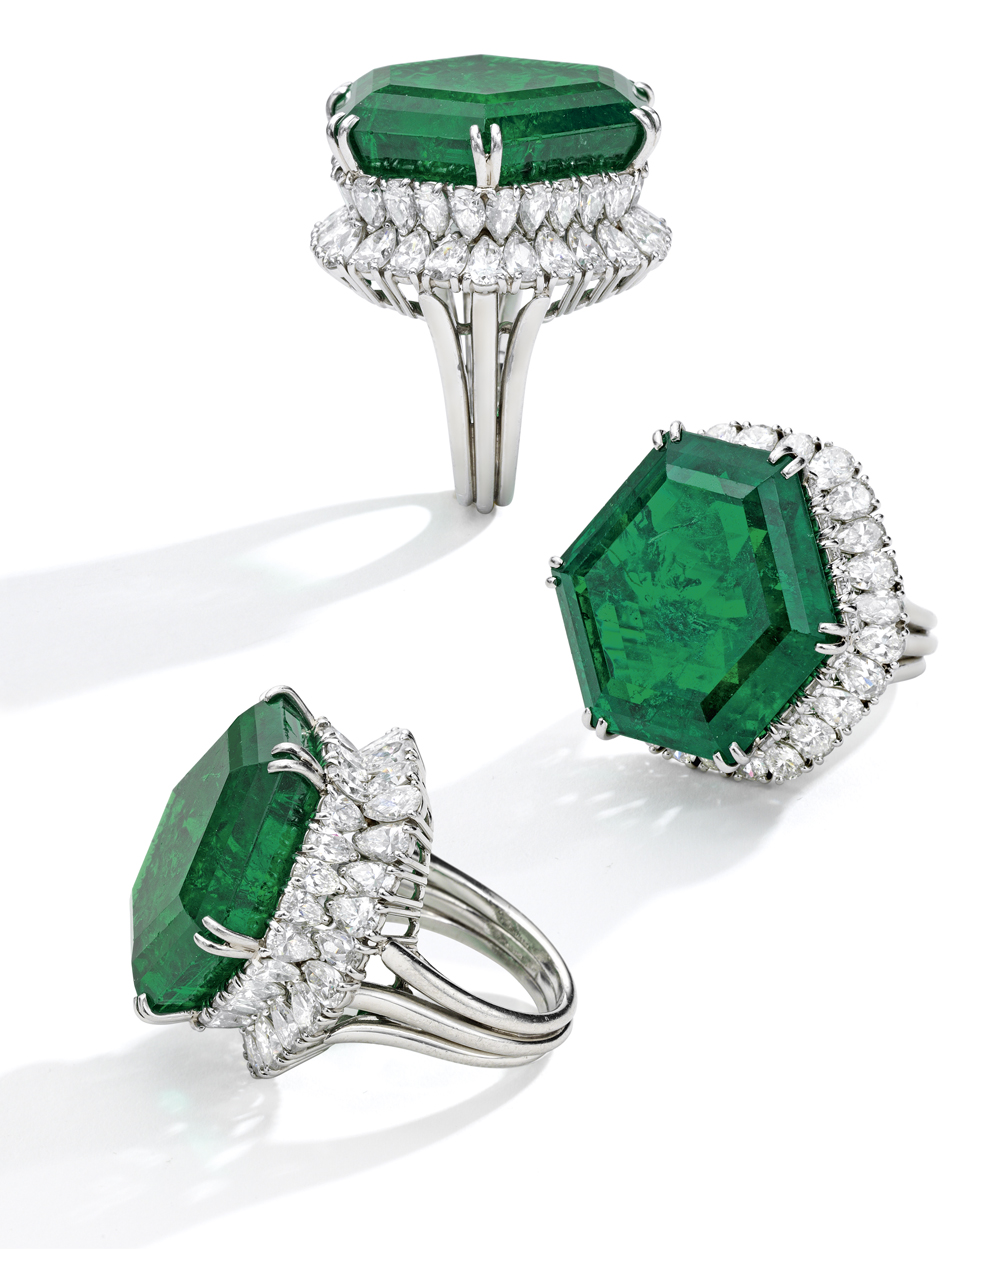 The Legendary Stotesbury Emerald